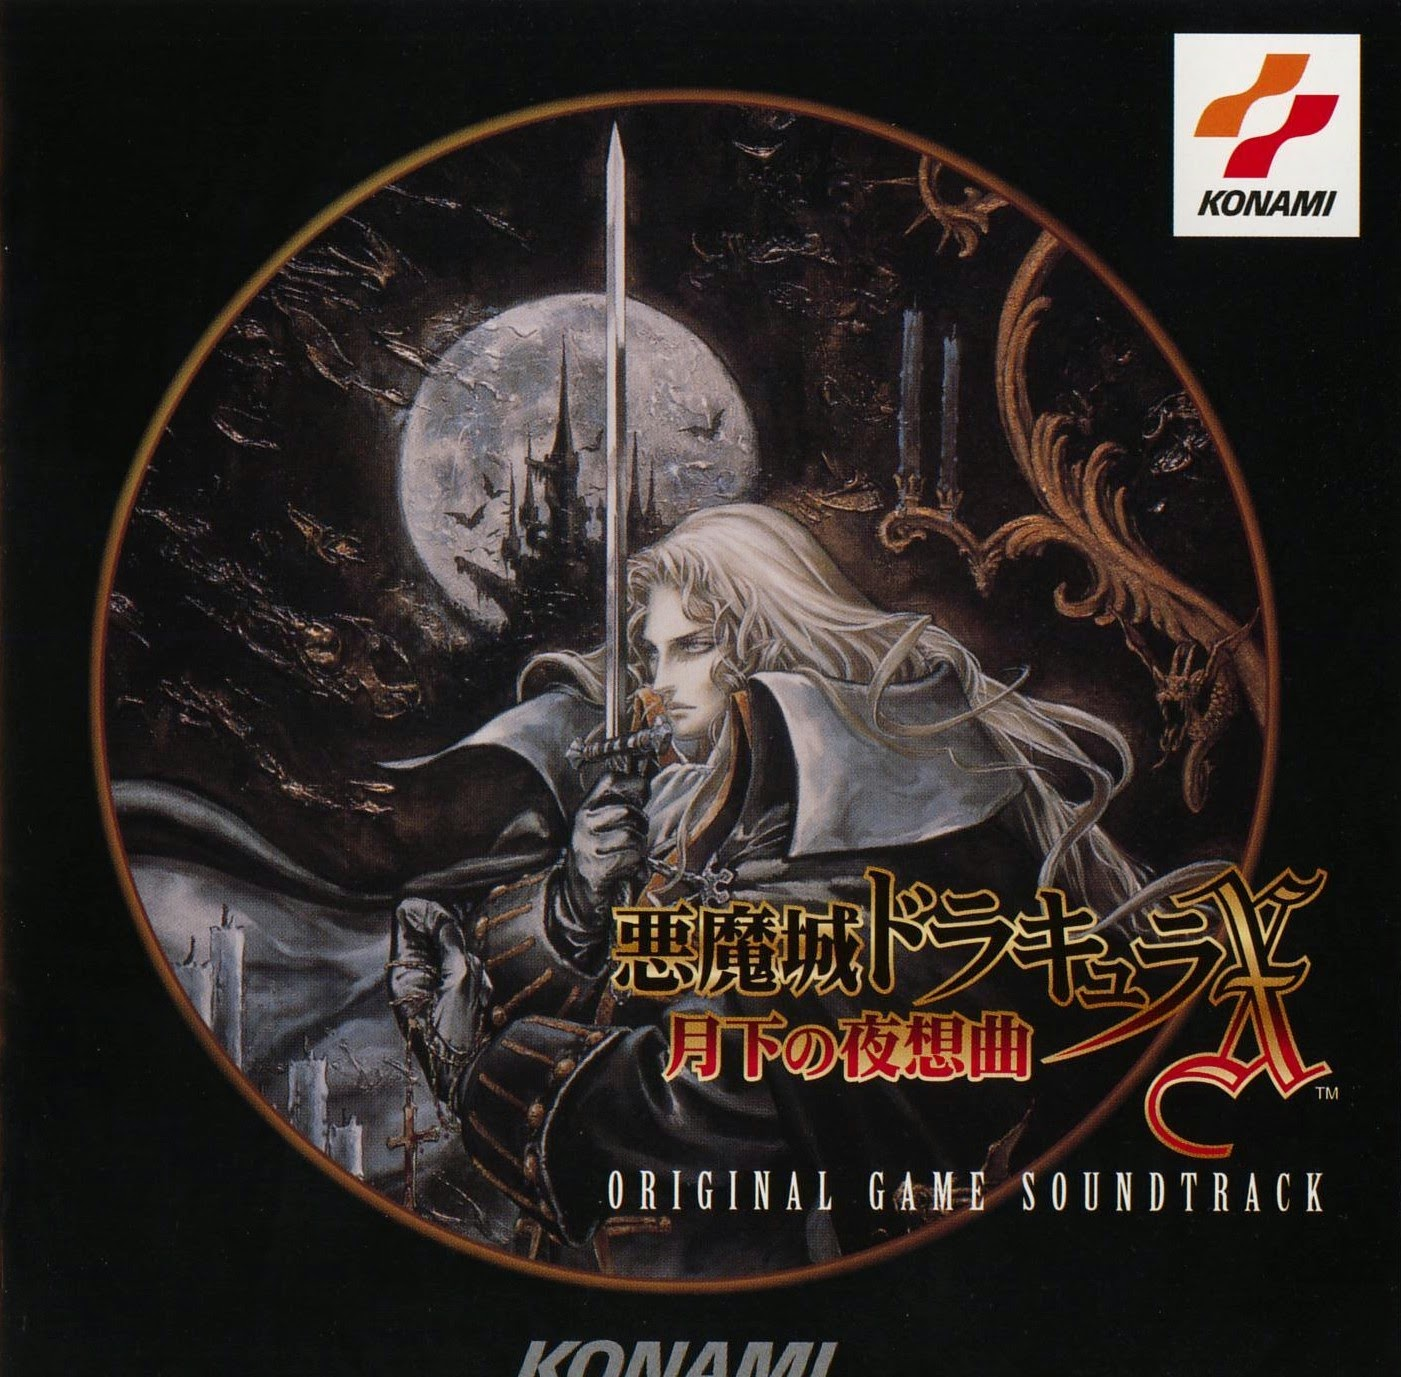 Akumajou Dracula X - Gekka no Yasoukyoku - Original Game Soundtrack - Front